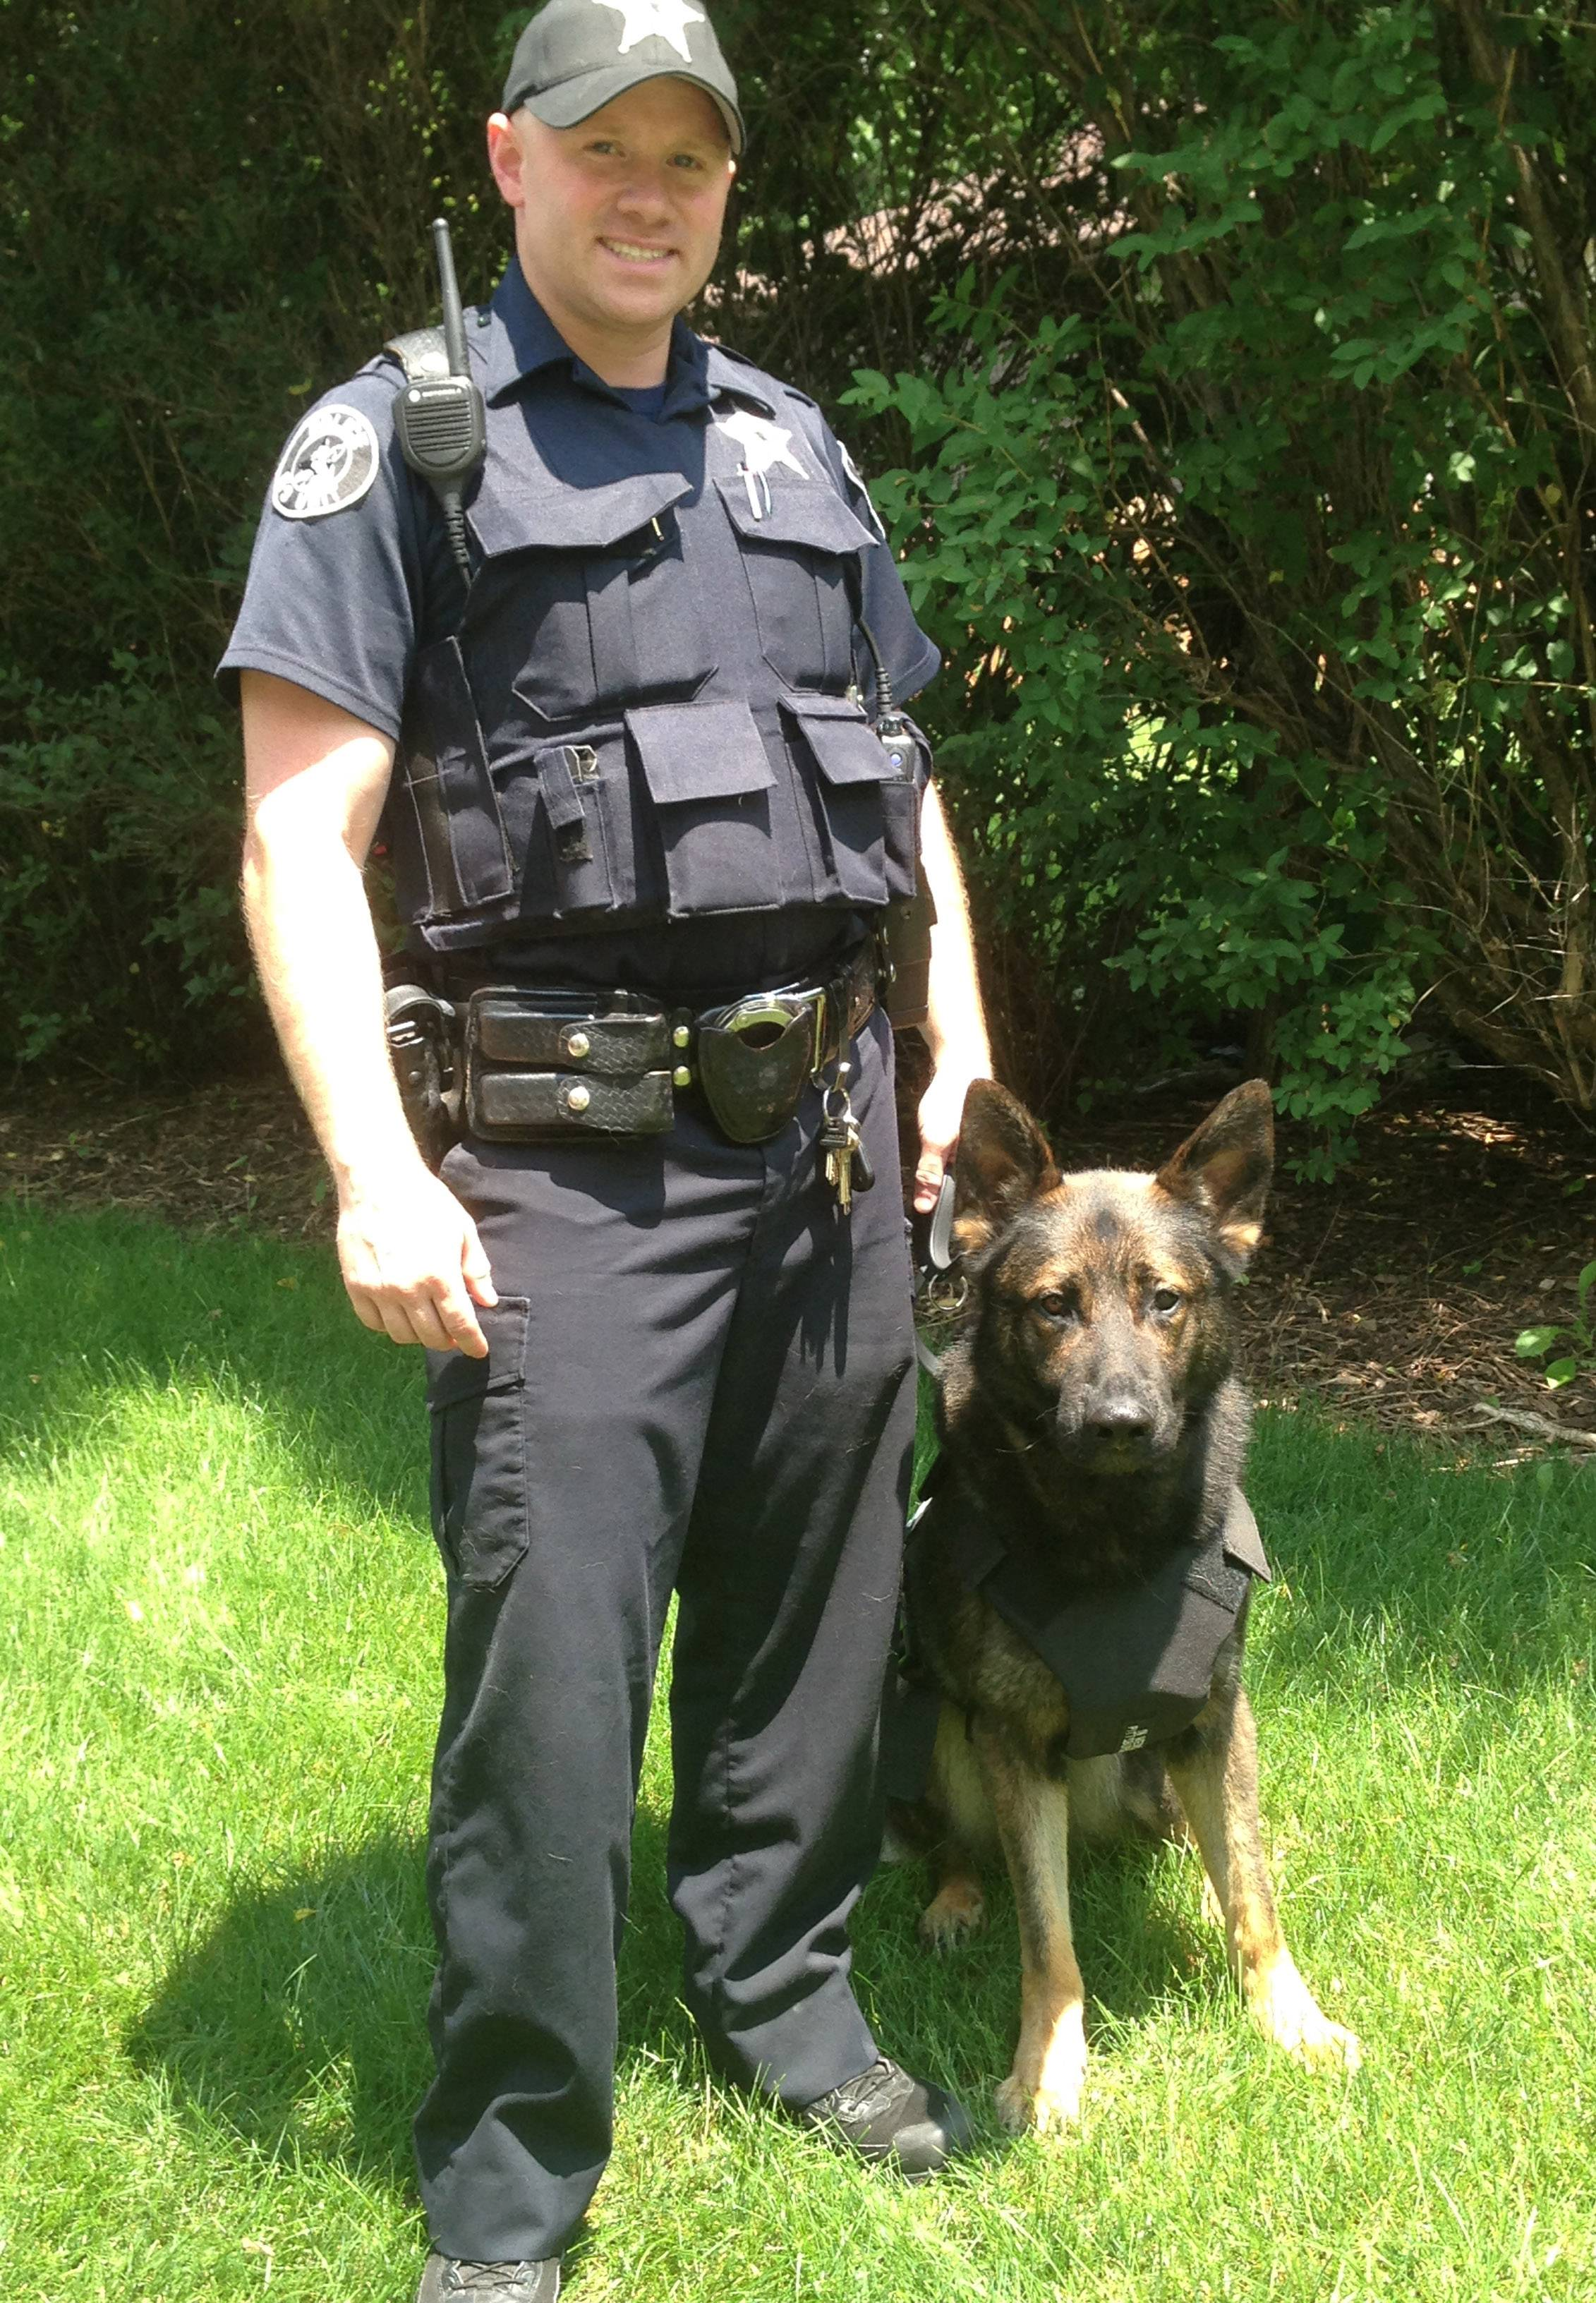 South Elgin's Rio, a German shepherd, received a ballistic vest donated through a partnership between Groupon and Vested Interest in K9s, Inc. Rio's handler is South Elgin Police Officer Bryan Kmieciak.